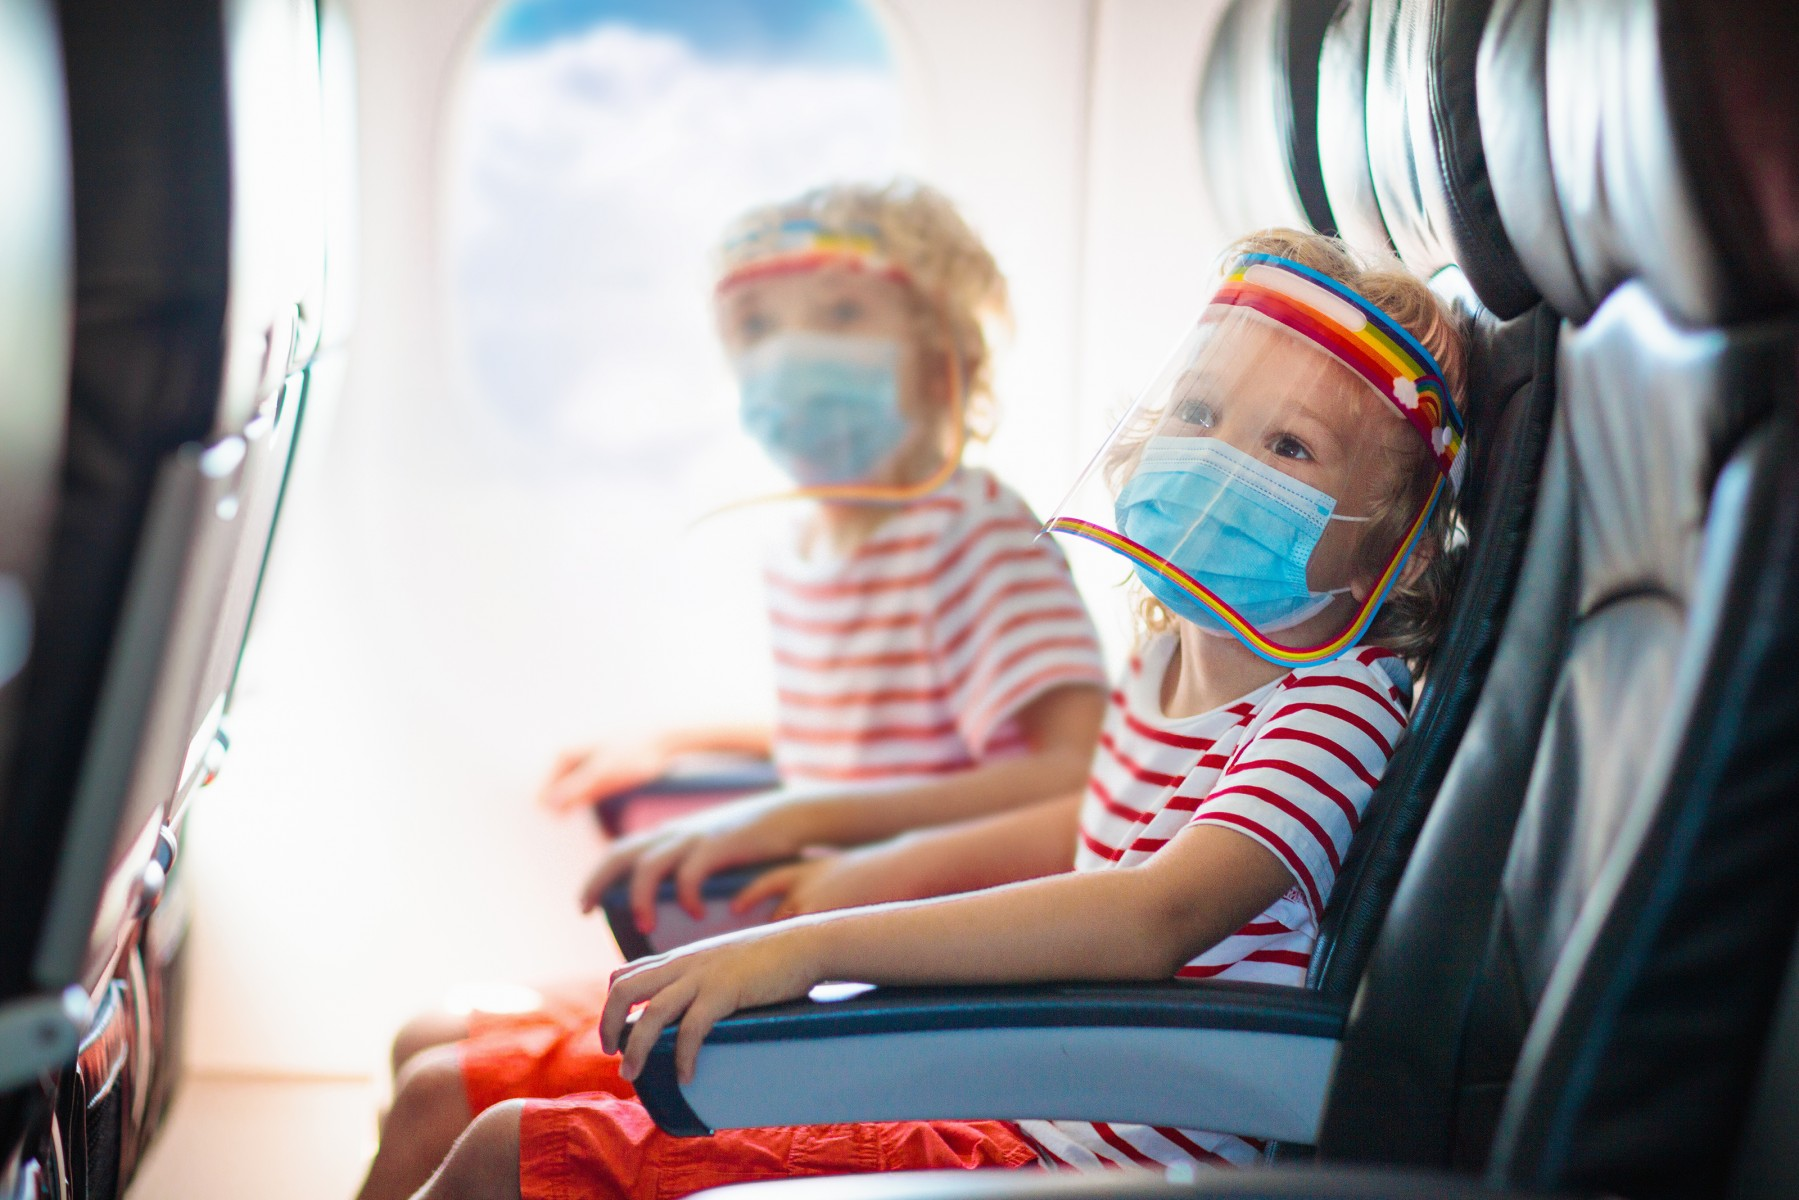 Kids on airplane with face shields